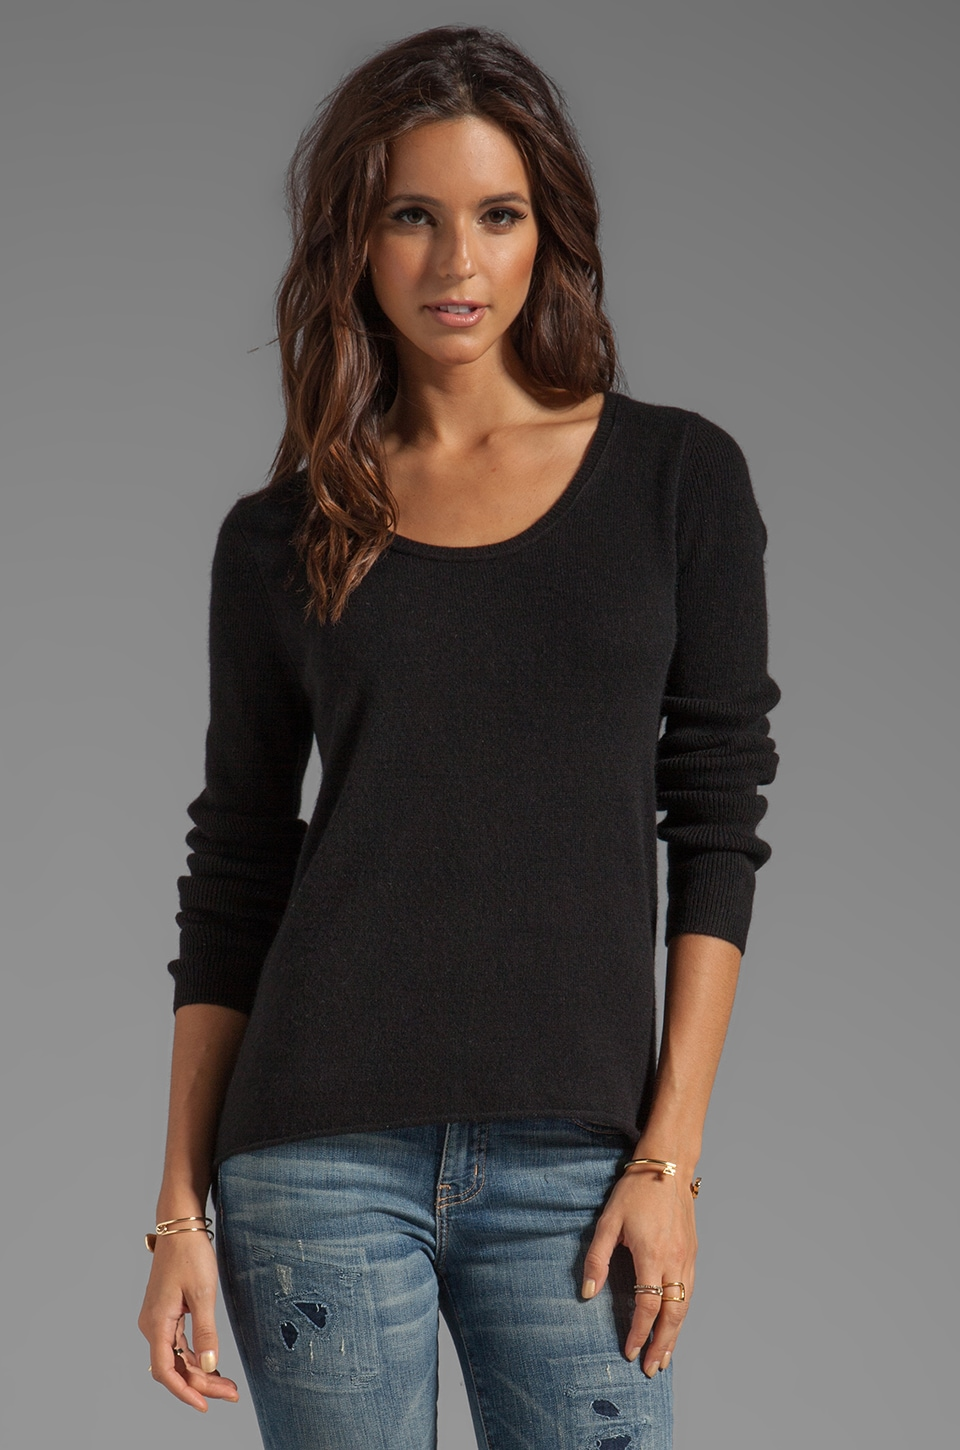 Velvet by Graham & Spencer Glitzy Cashmere Classics Loose Long Sleeve in Black